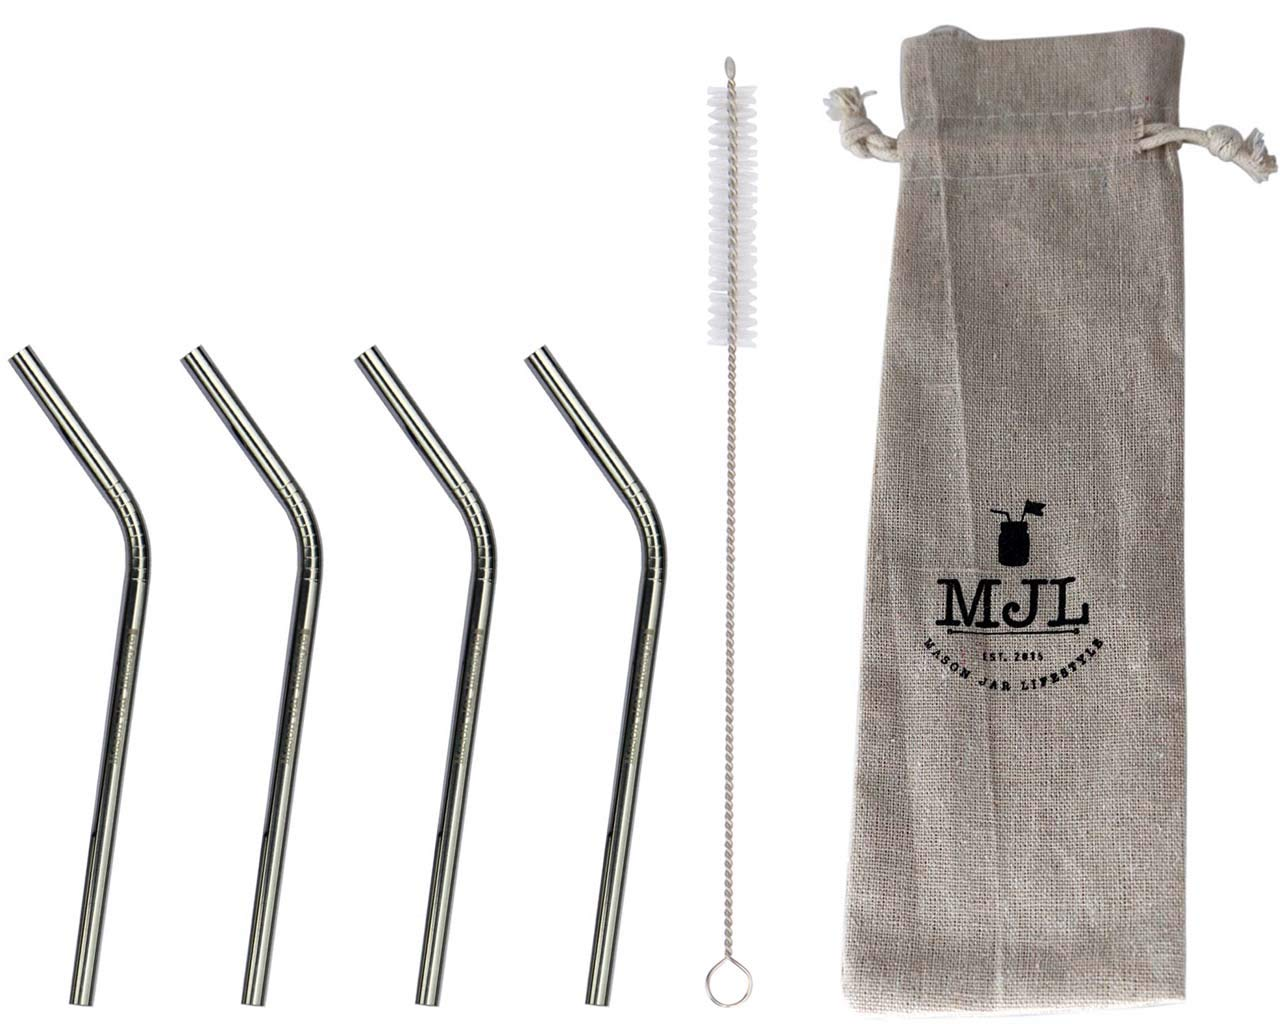 Short Thin Bent Stainless Steel Straws for Cocktail Glasses, Kids, Small Cups, or Half Pint Mason Jars, 4 Pack + Cleaning Brush by Mason Jar Lifestyle